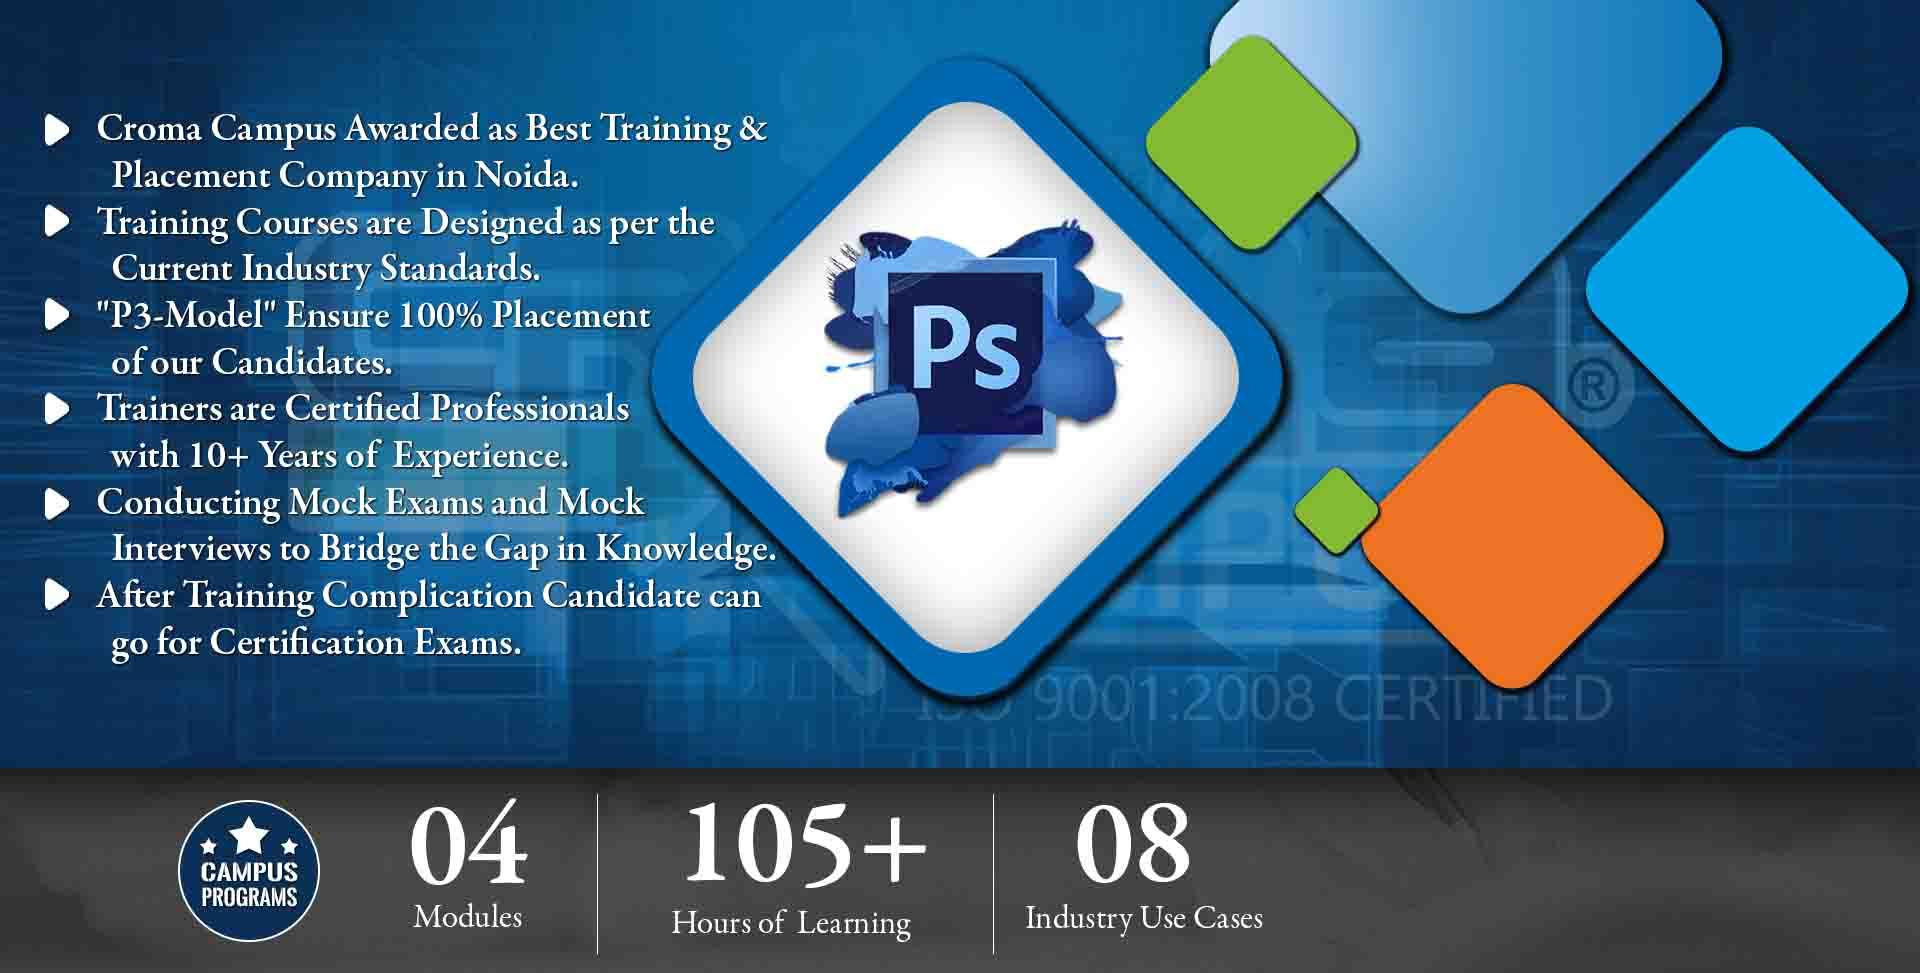 Photoshop Training in Delhi NCR- Croma Campus